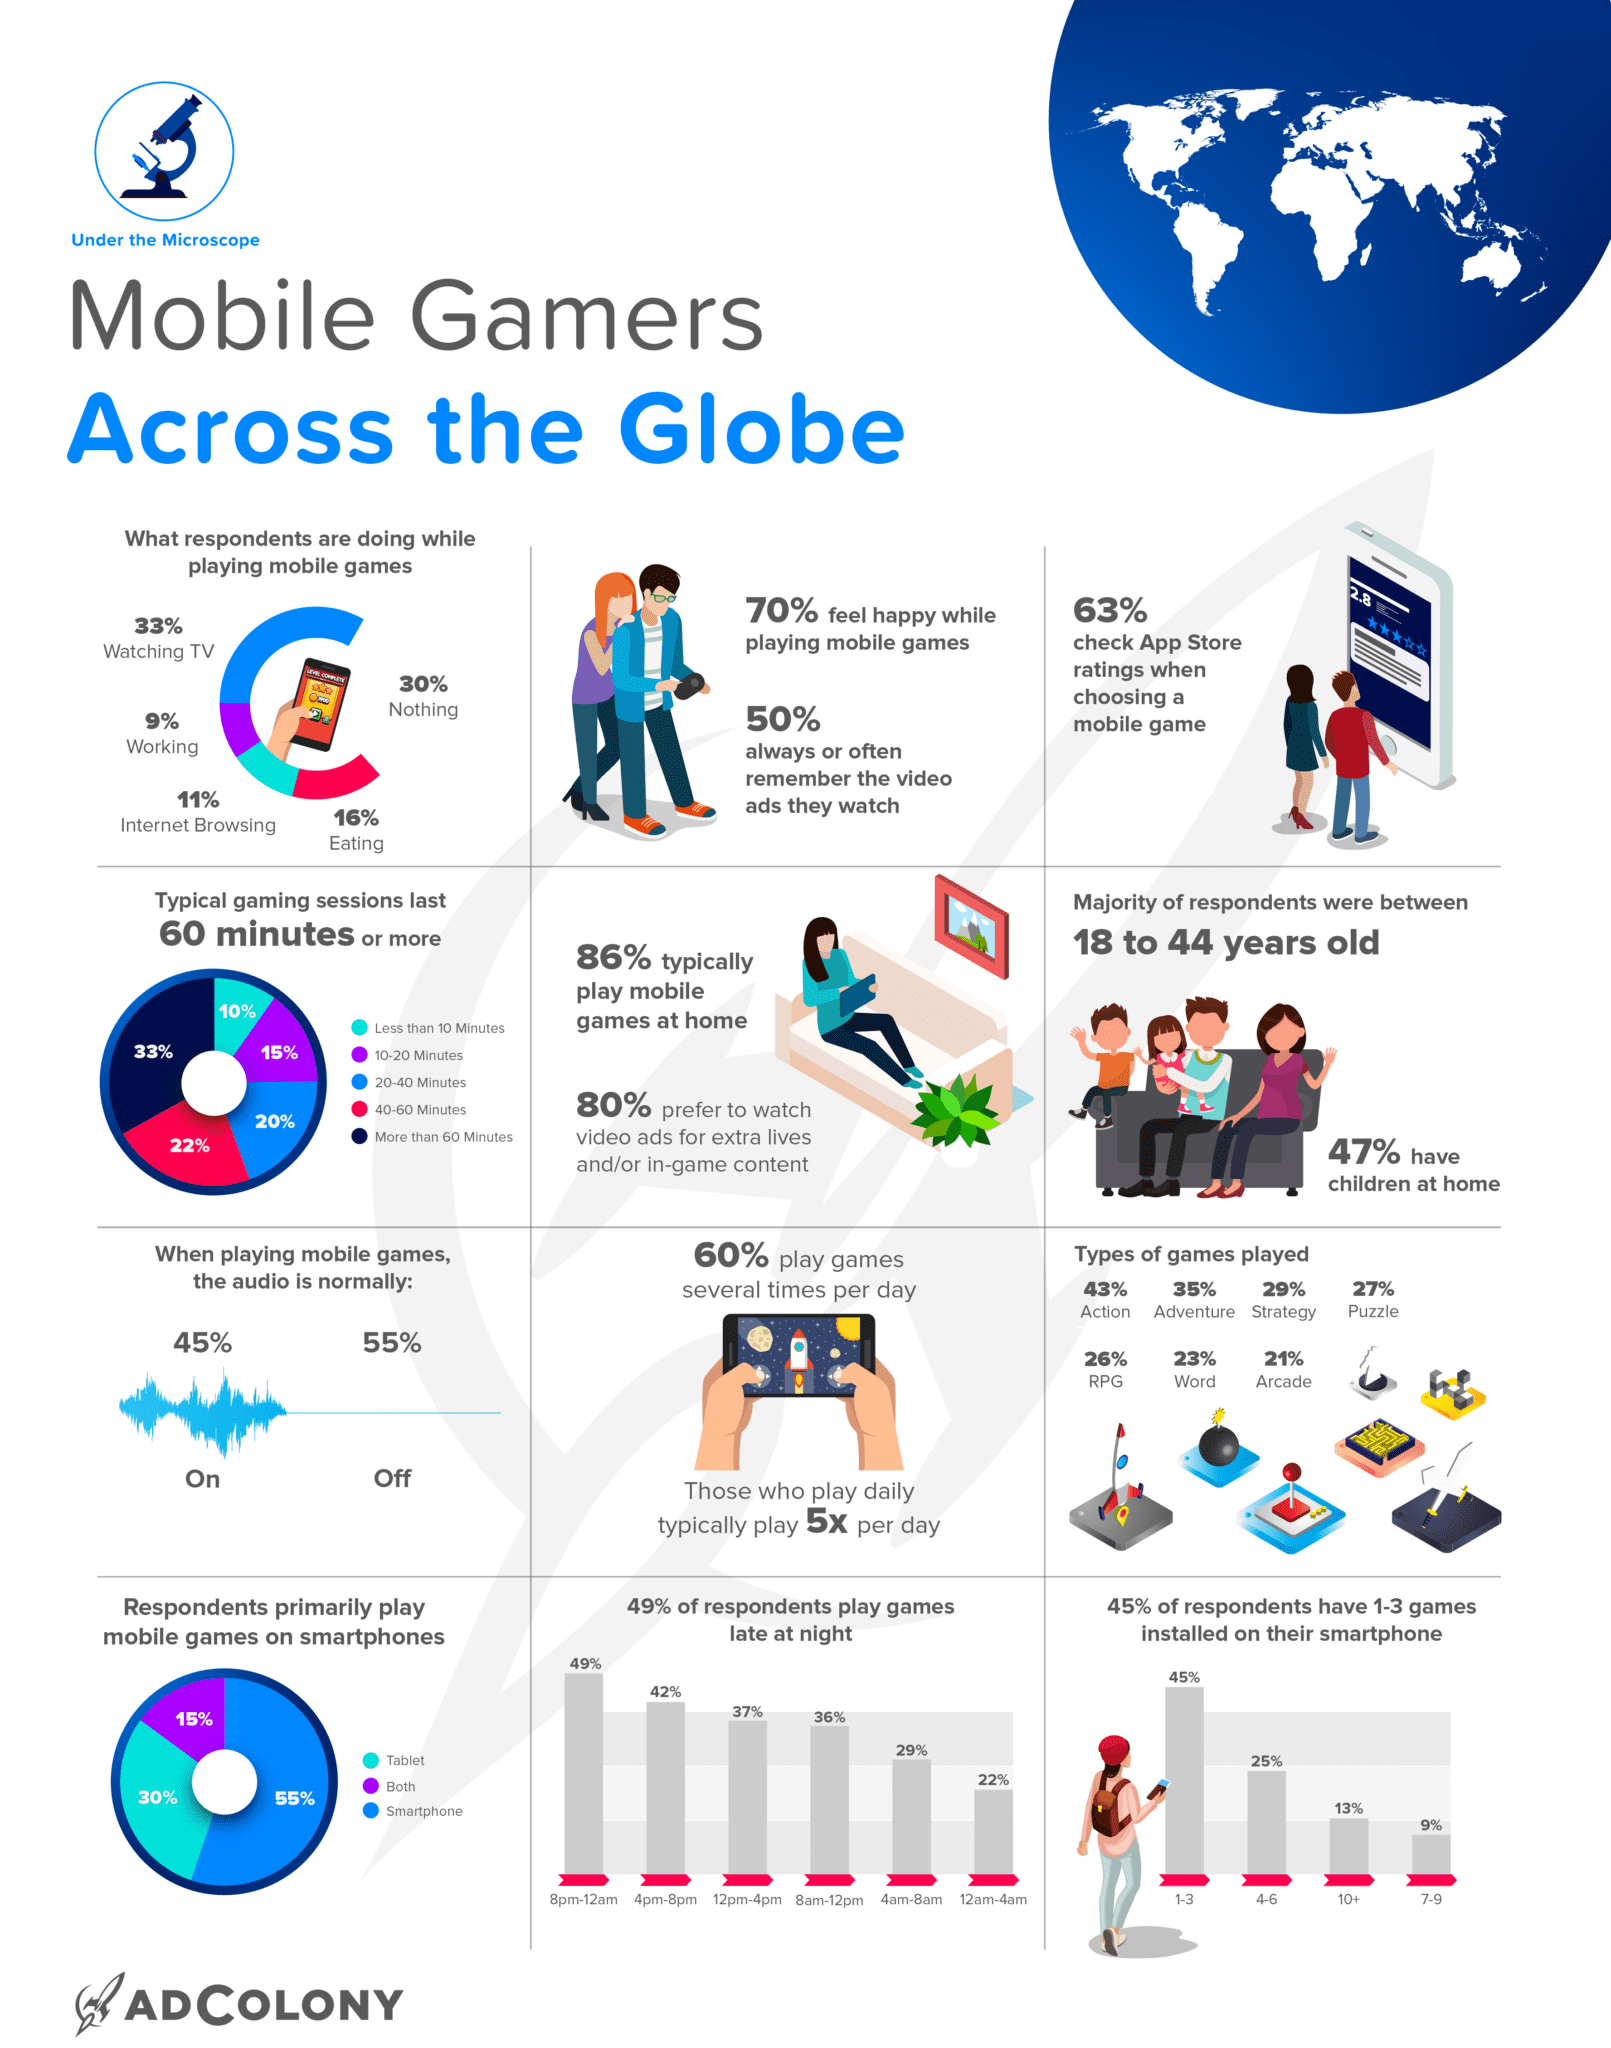 Gaming_Under_the_Microscope_Global_October_2018